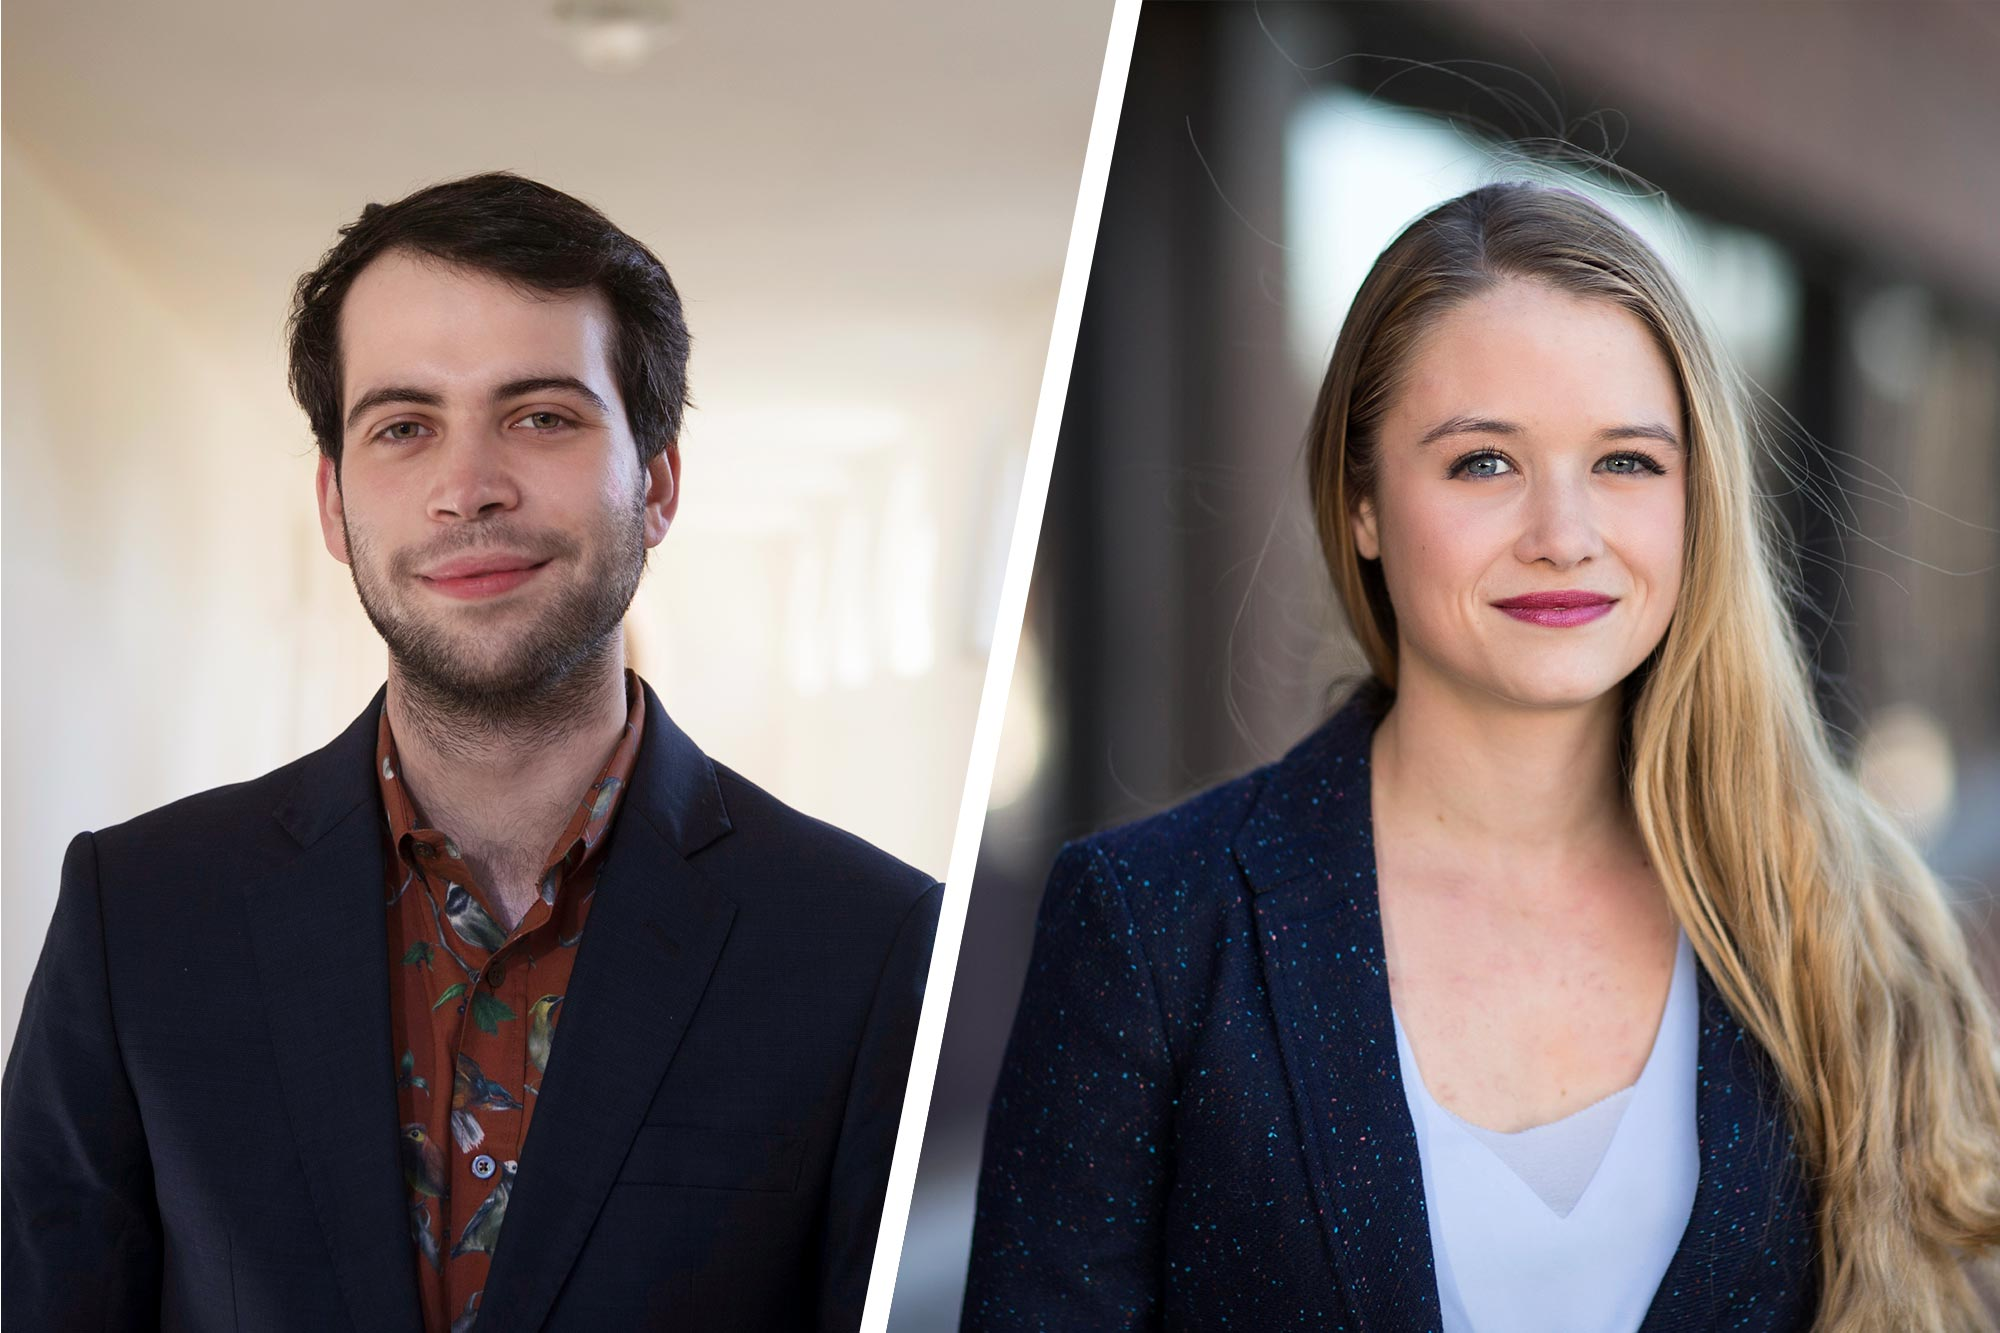 Abraham Axler will study social policy and political communication at the London School of Economics and Sarah Koch will take Oriental studies and refugee and forced migration studies at the University of Oxford with their Marshall Scholarships. (Photos by Dan Addison, University Communications)